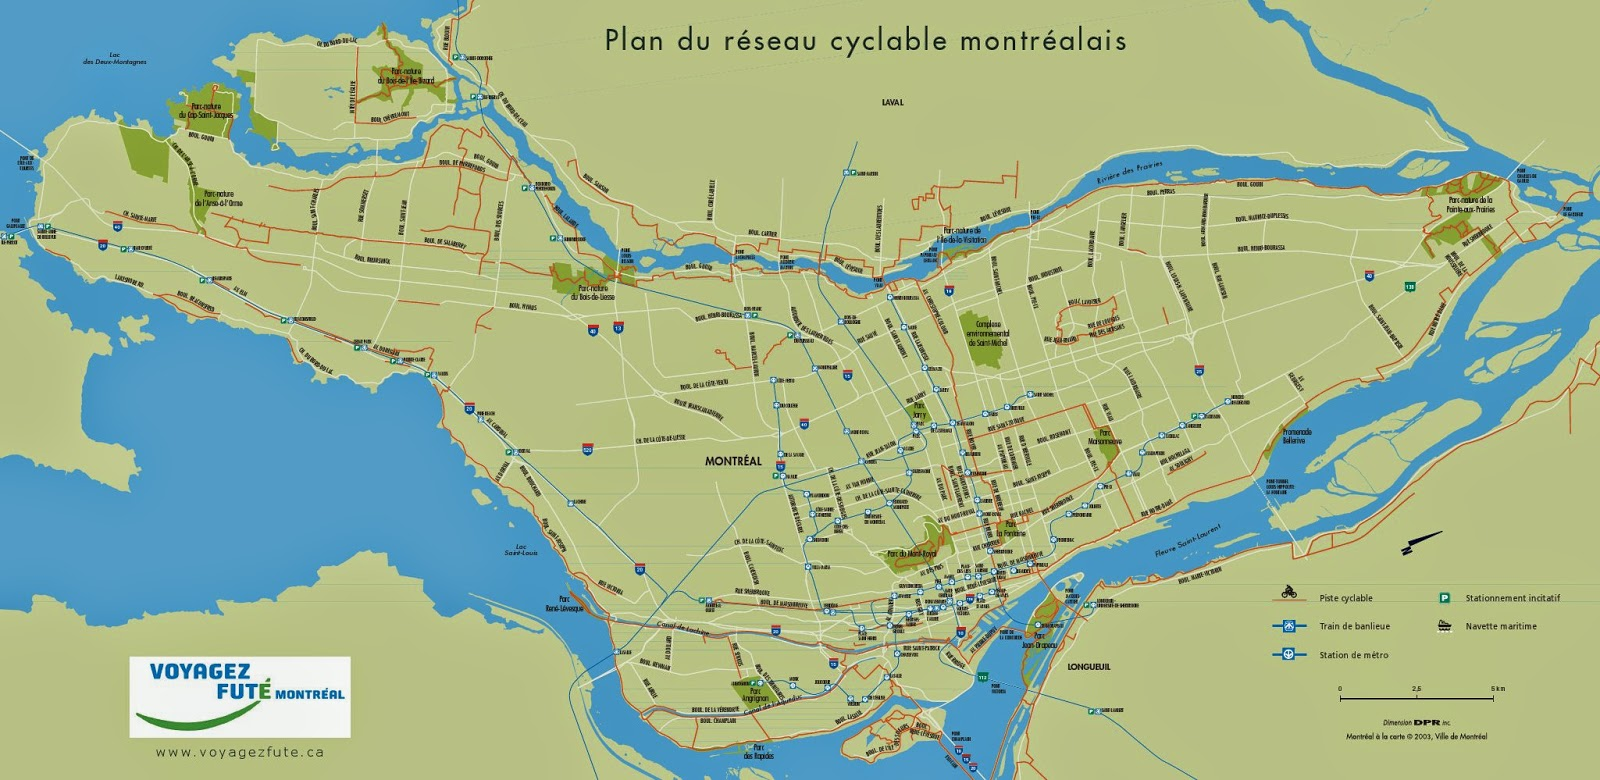 Montreal cycling network map